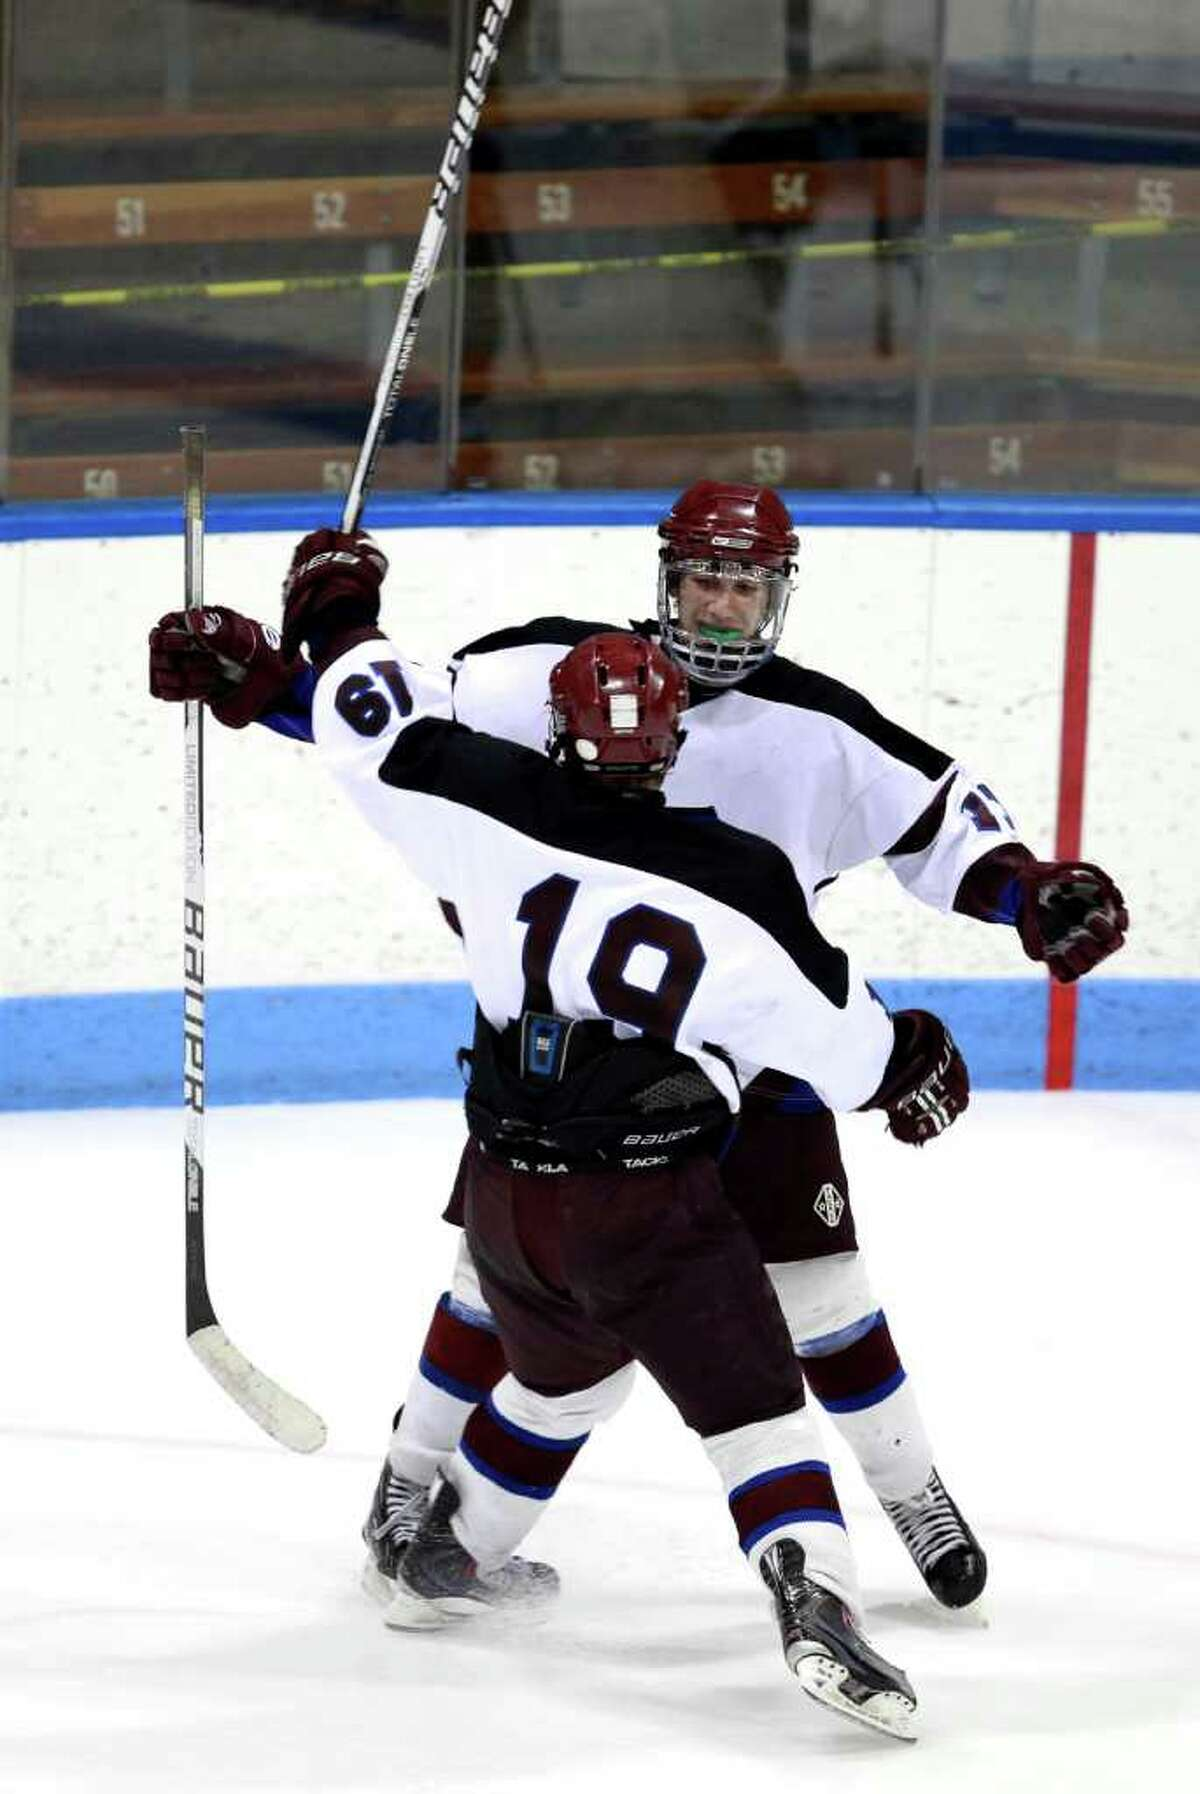 Brookfield/Bethel/Danbury's # 11 Steven Hallock and teammate #19 Nick Melvin celebrate after Hallock's first period goal during Division III hockey semi-finals against Northwest Catholic on Tuesday March 13, 2012, in New Haven, Conn.